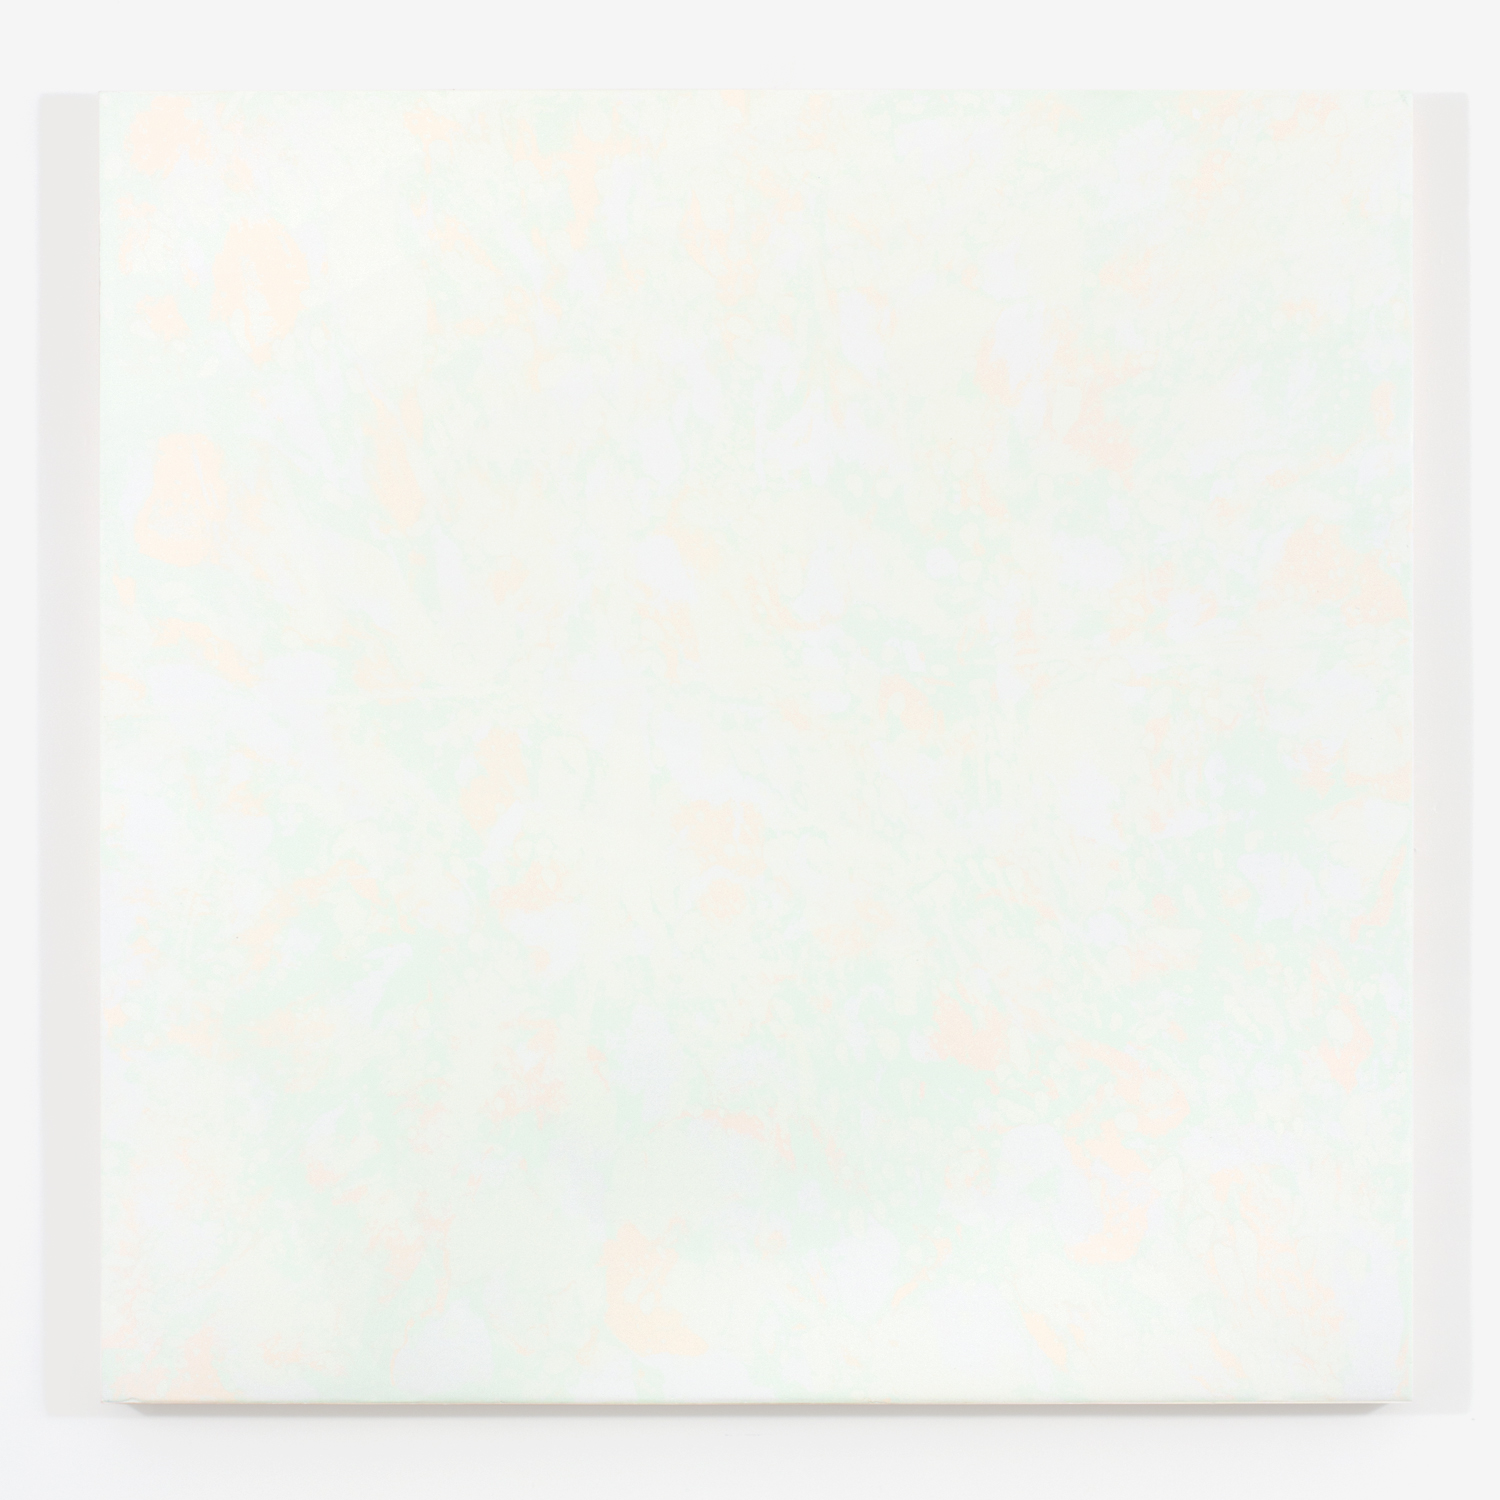 """Pierre Julien,  Gathering of the Clouds 1 , 2015, plaster and acrylic on wood panel,48"""" x 48"""" (122 x 122 cm)."""